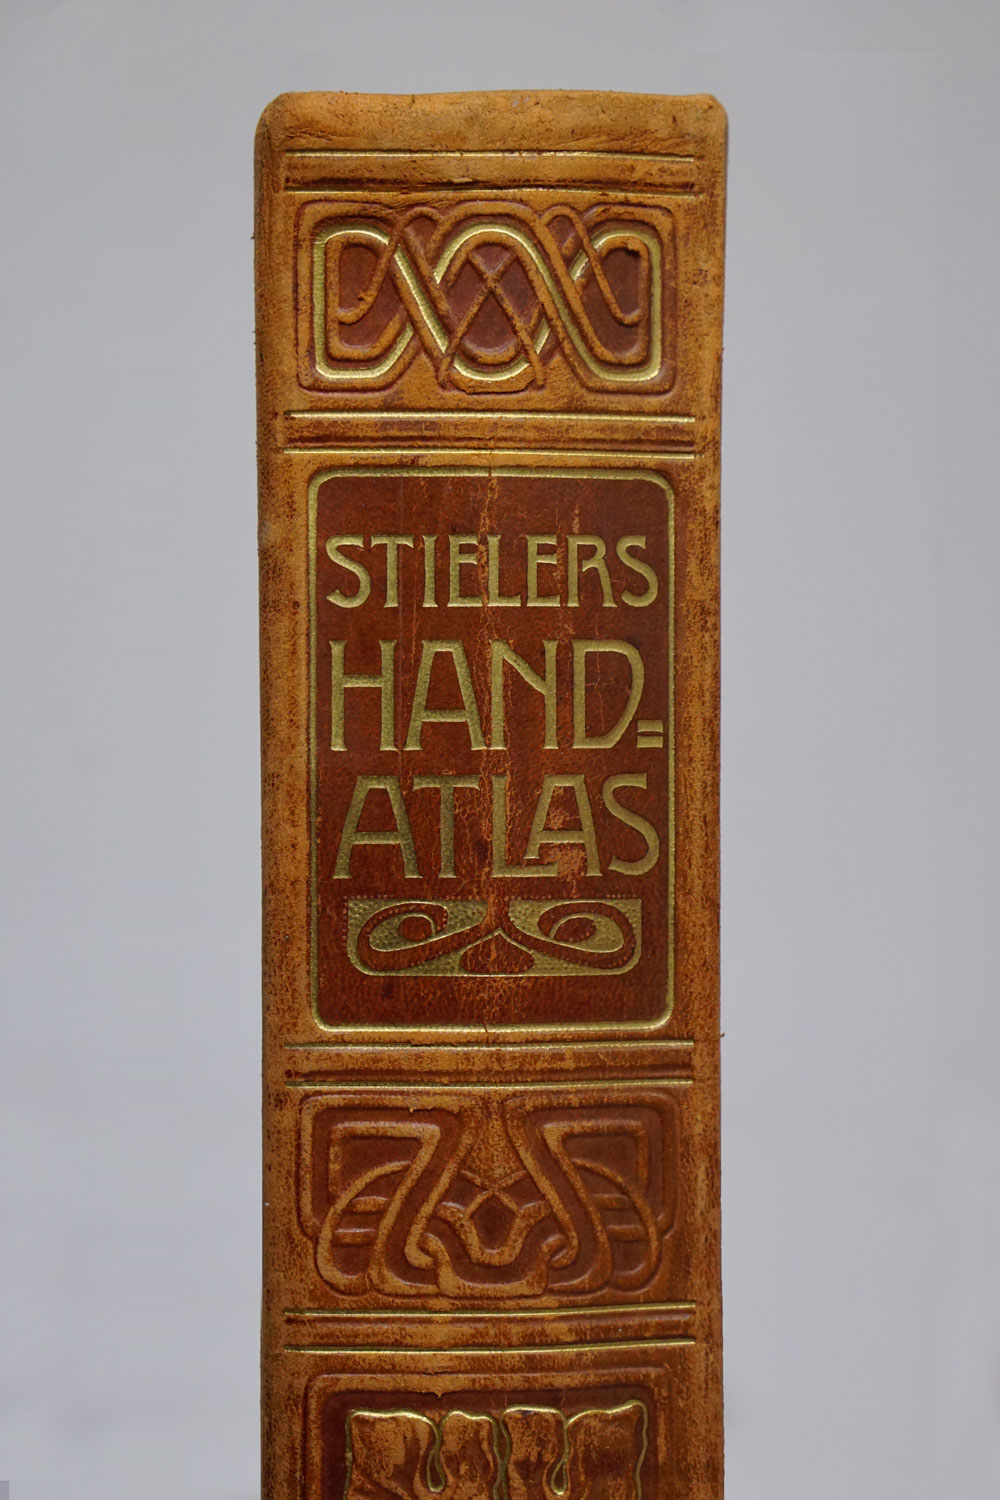 Stielers Handatlas - 9th edition of popular large german family atlas